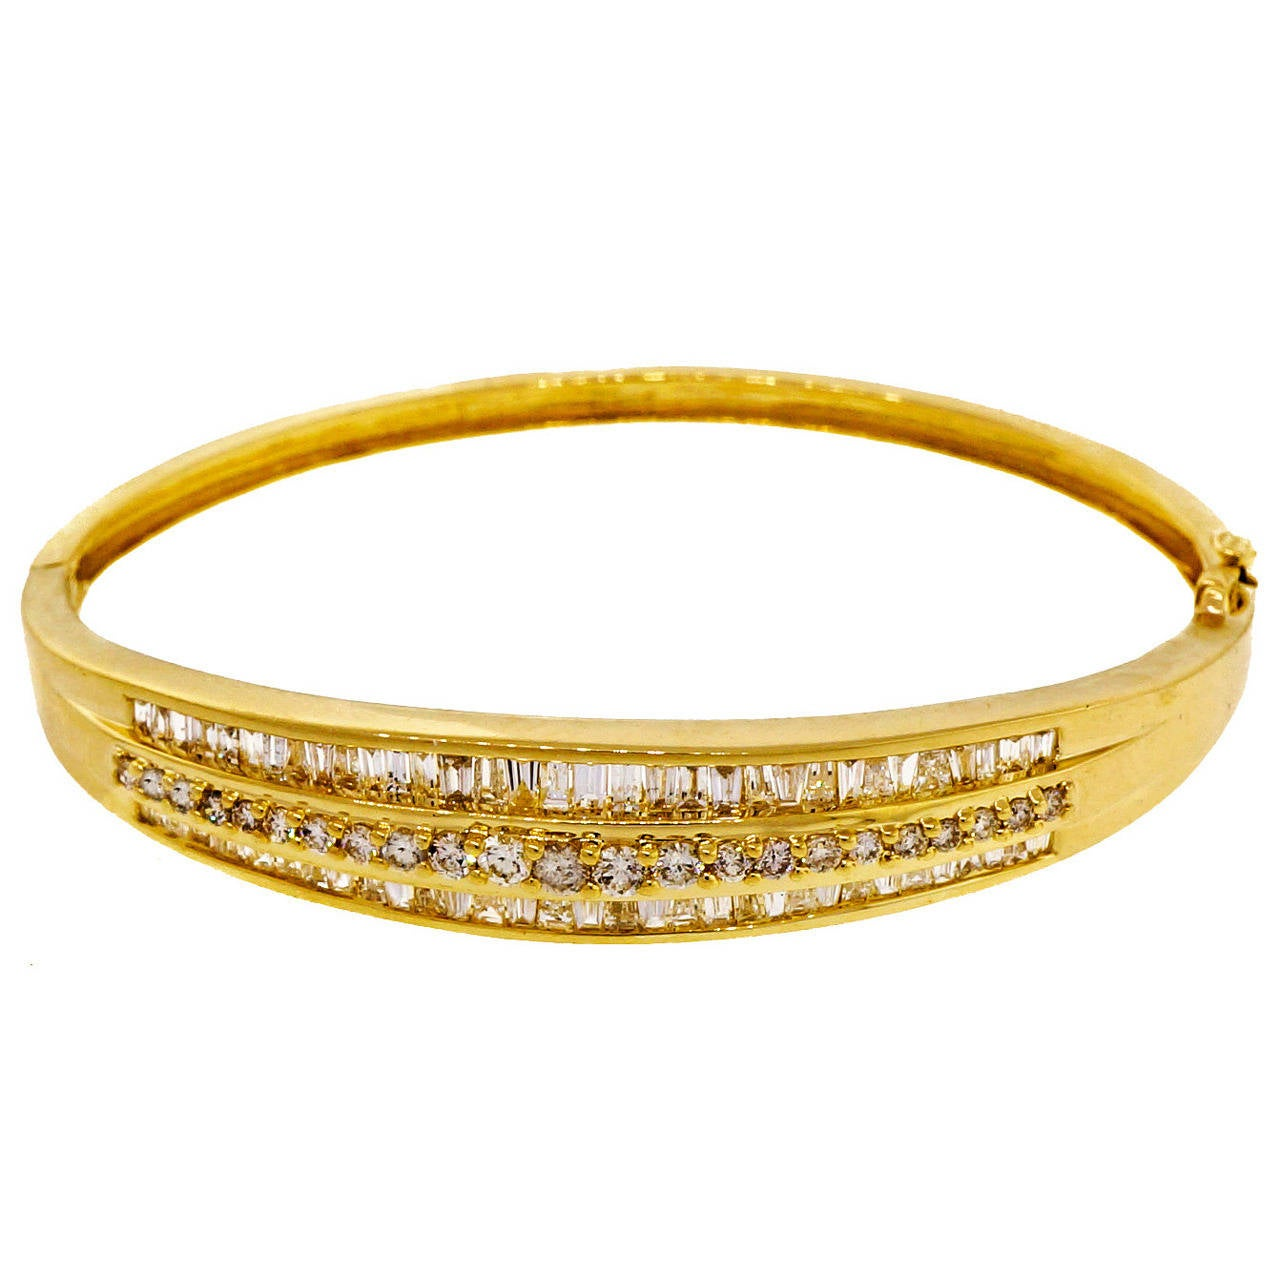 1.66 Carat Baguette Round Diamond Hinged Gold Bangle Bracelet For Sale